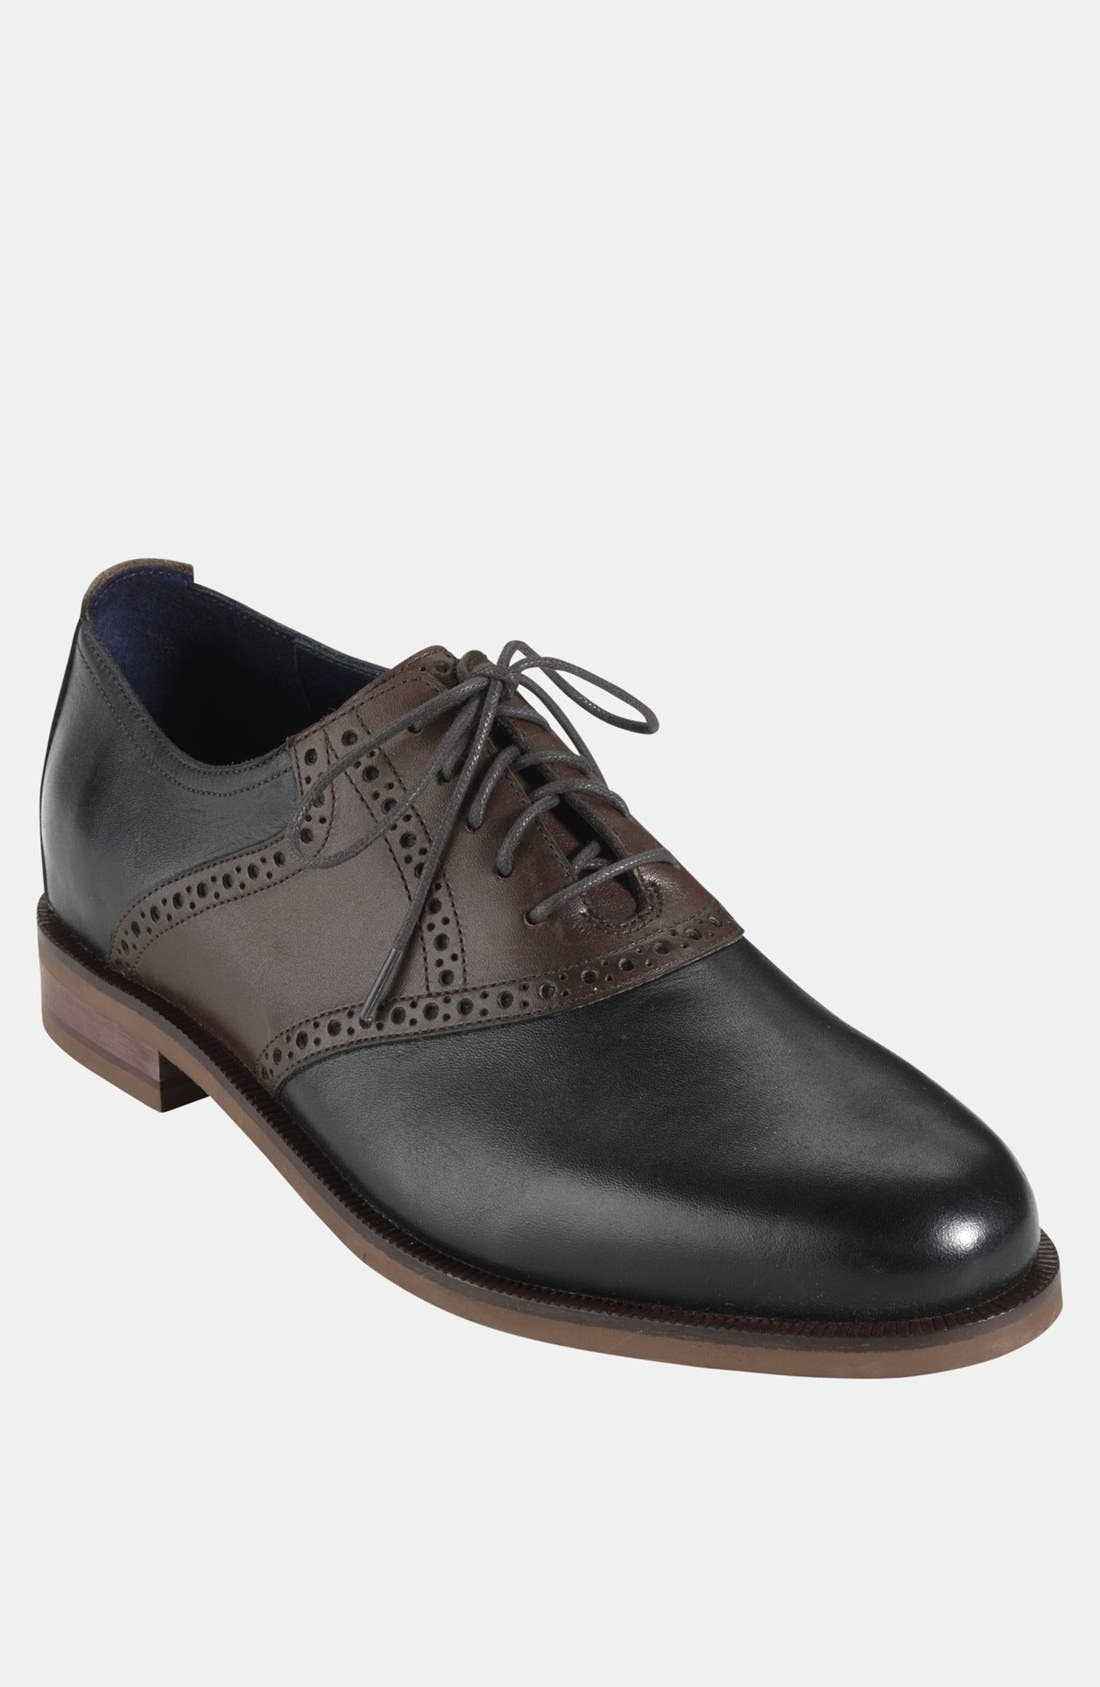 Alternate Image 1 Selected - Cole Haan 'Carter' Saddle Shoe